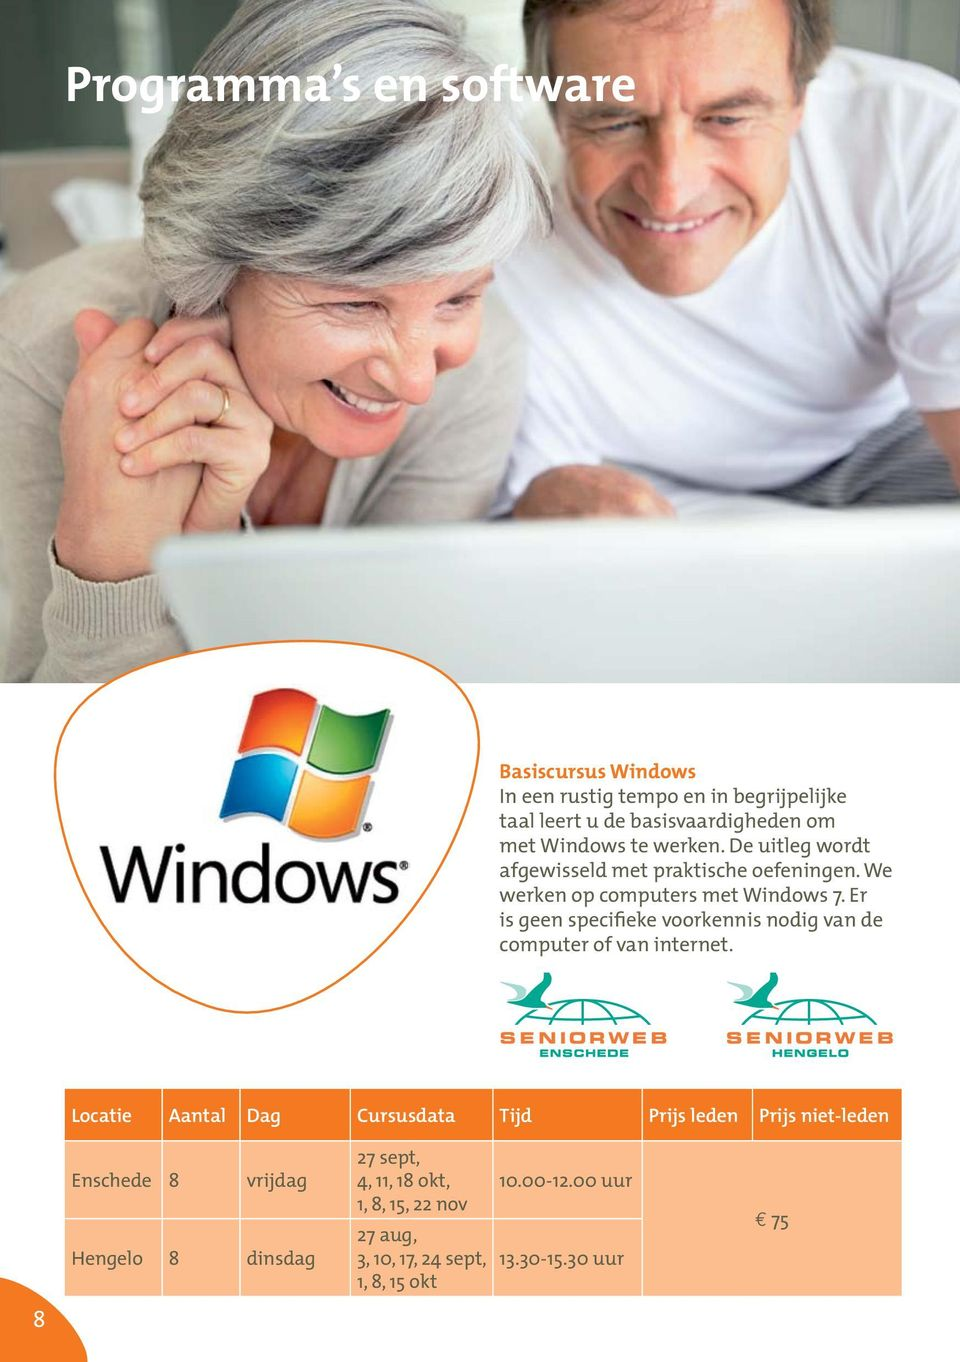 We werken op computers met Windows 7. Er is geen specifieke voorkennis nodig van de computer of van internet.